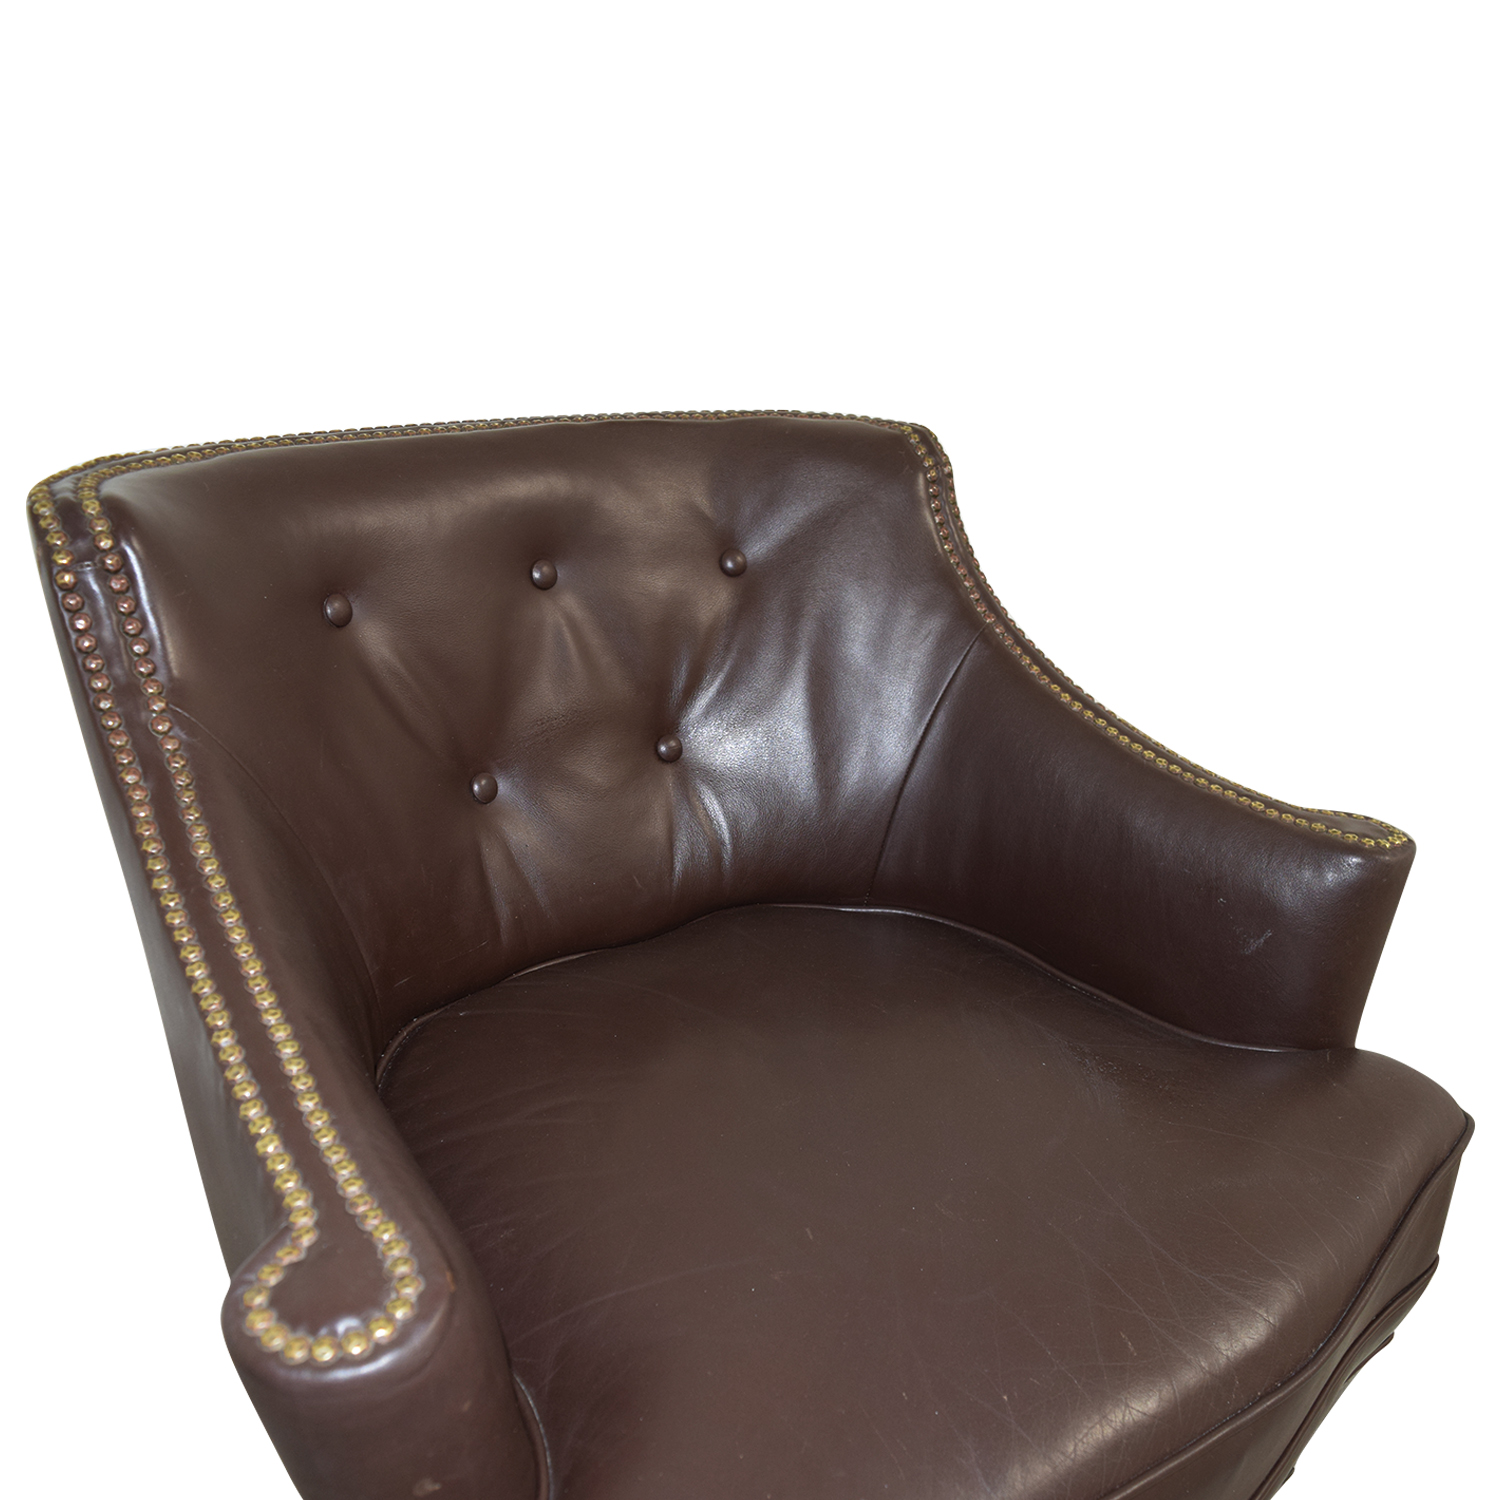 70 Off Pier 1 Imports Pier 1 Imports Brown Leather